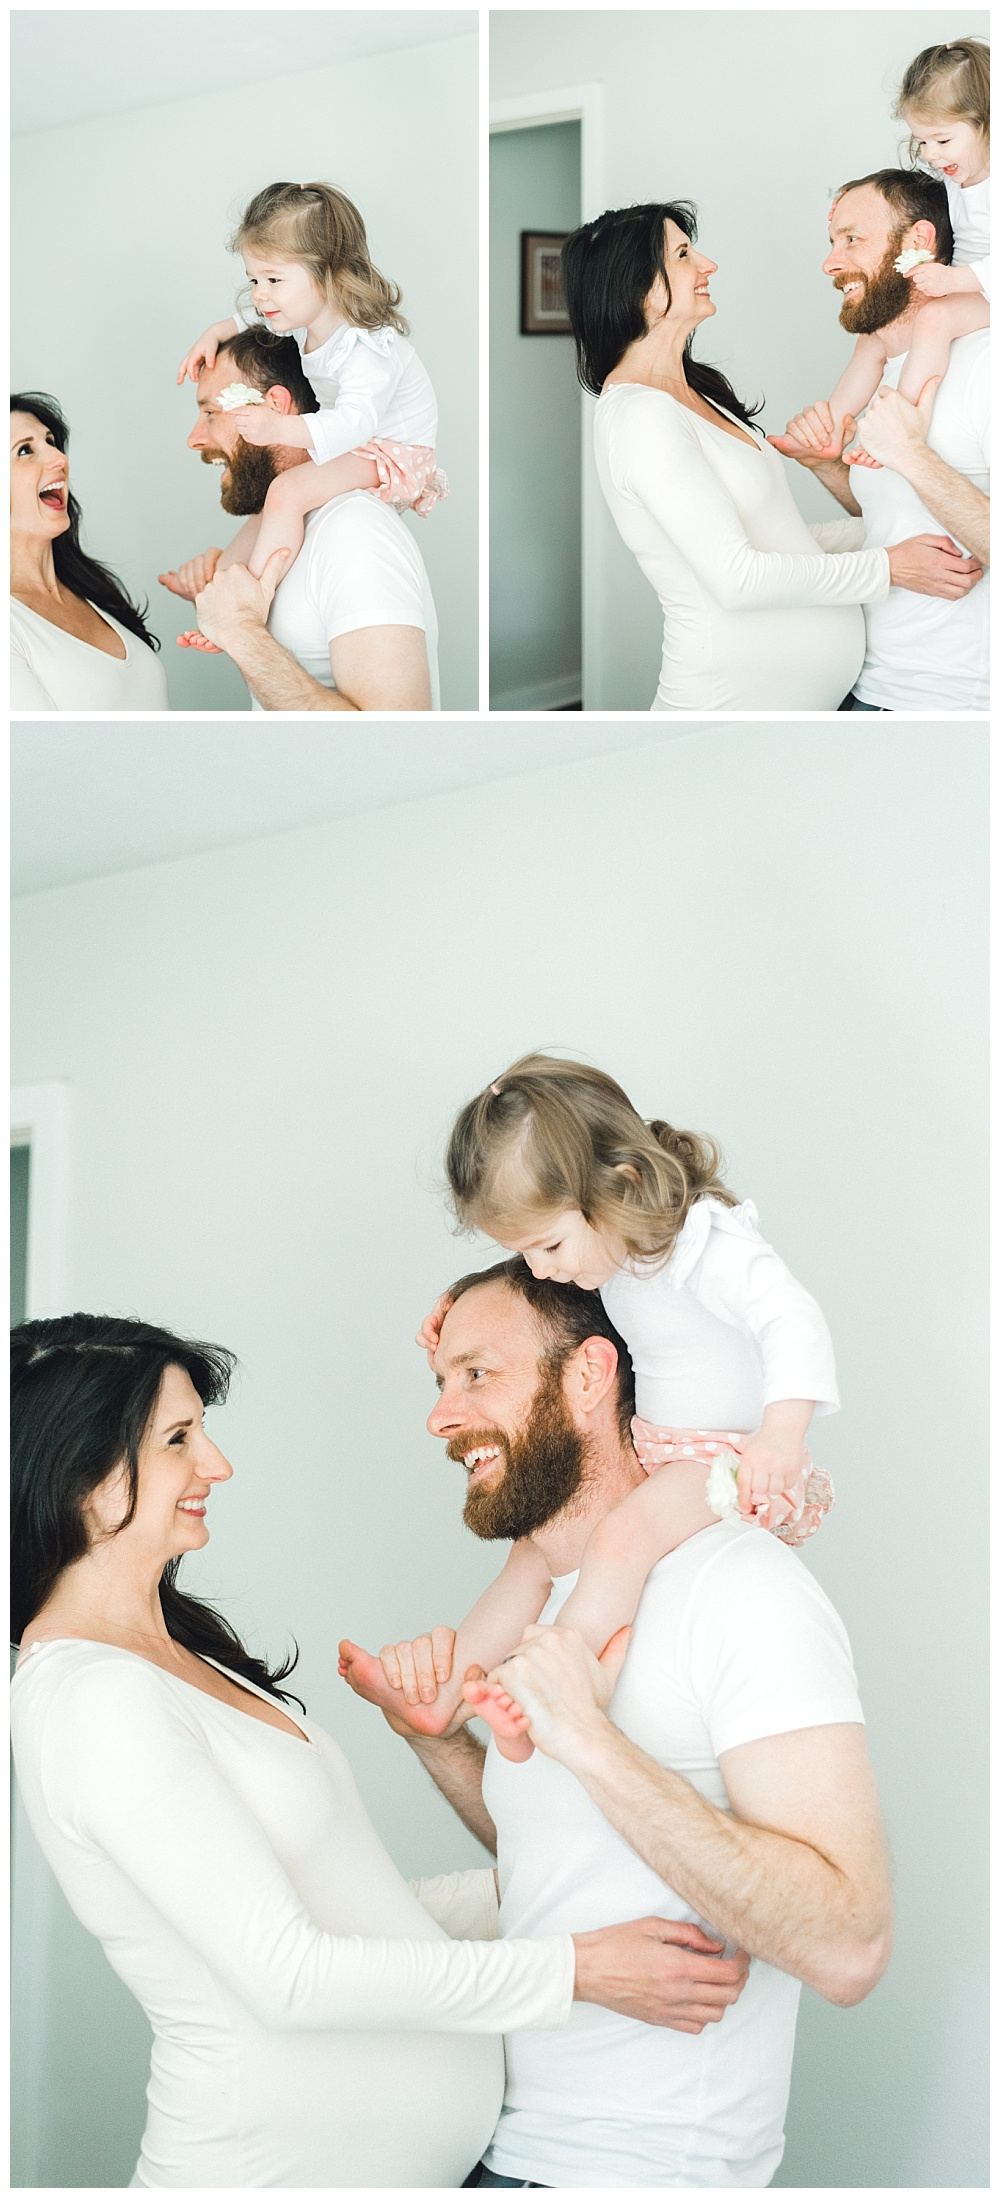 joyful family portraits. pregnant mommy playing with child on dad's shoulders.